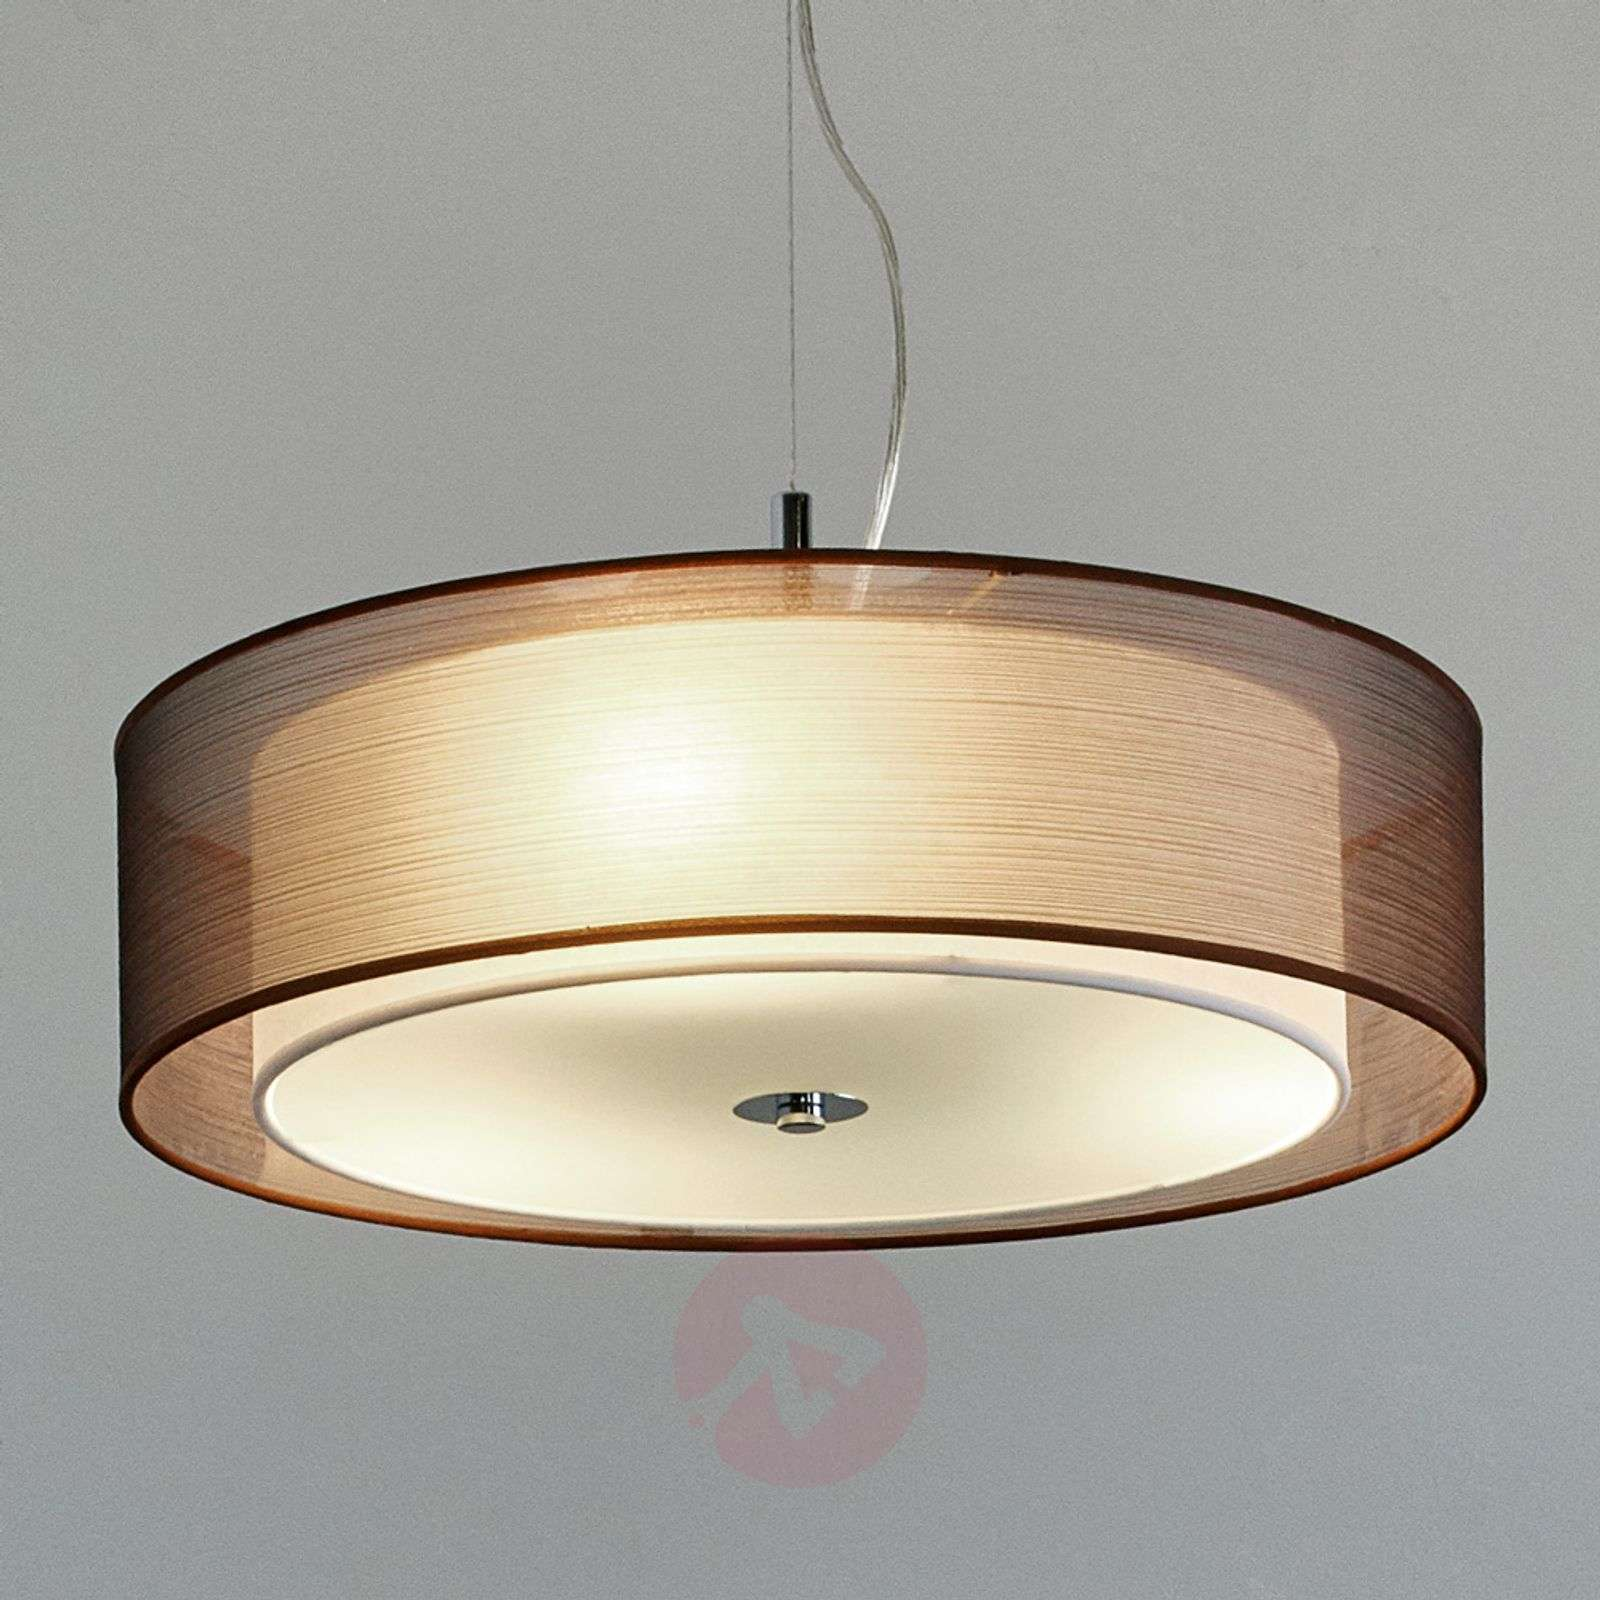 Tissu Couleur Pikka Suspension Led Chocolat cj354RLAqS